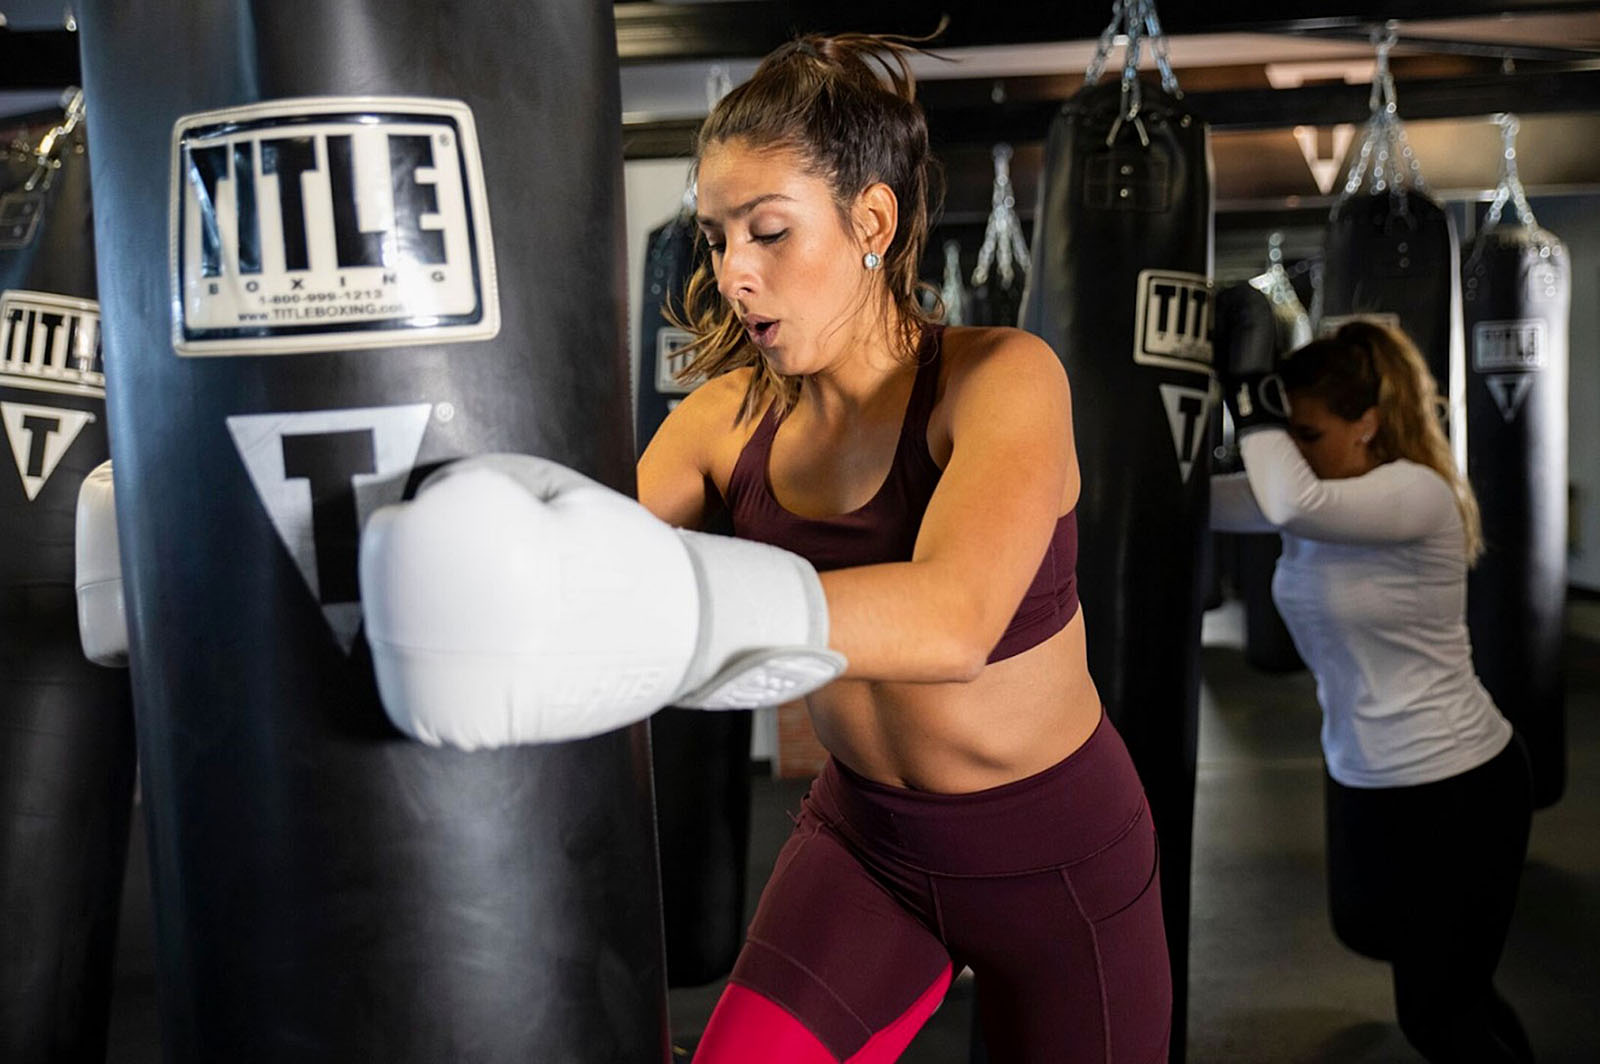 Woman kicking a heavy bag during a TITLE Boxing Club class